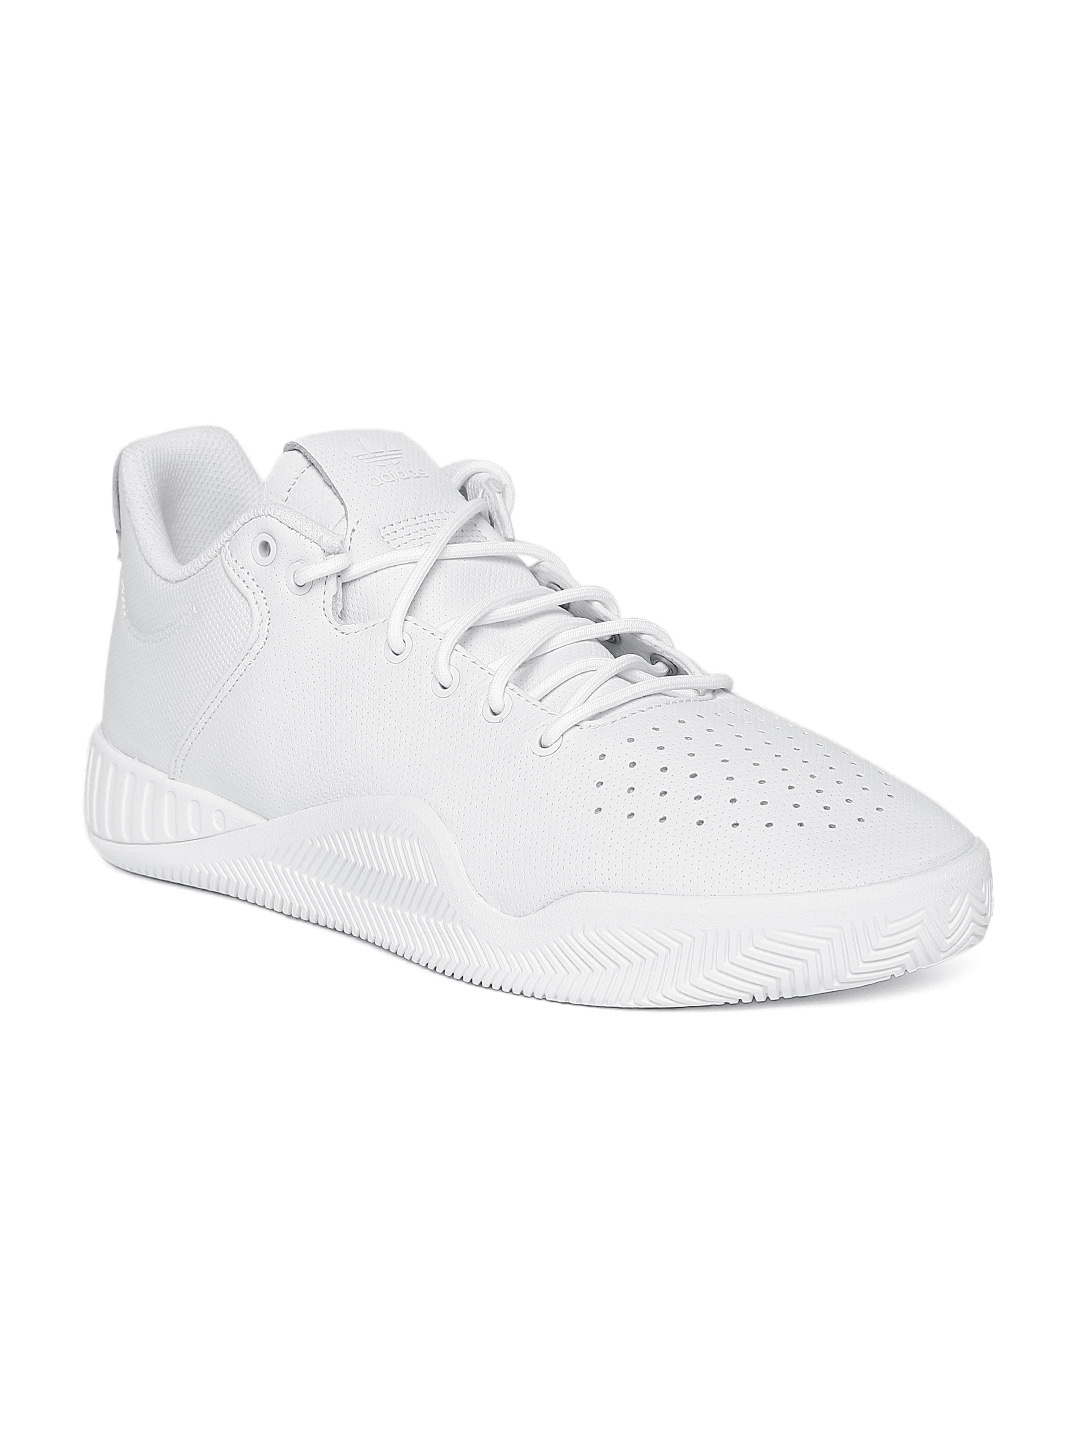 ADIDAS Originals Men White Tubular Instinct Low Perforated Sneakers 4232d5ac31a6a